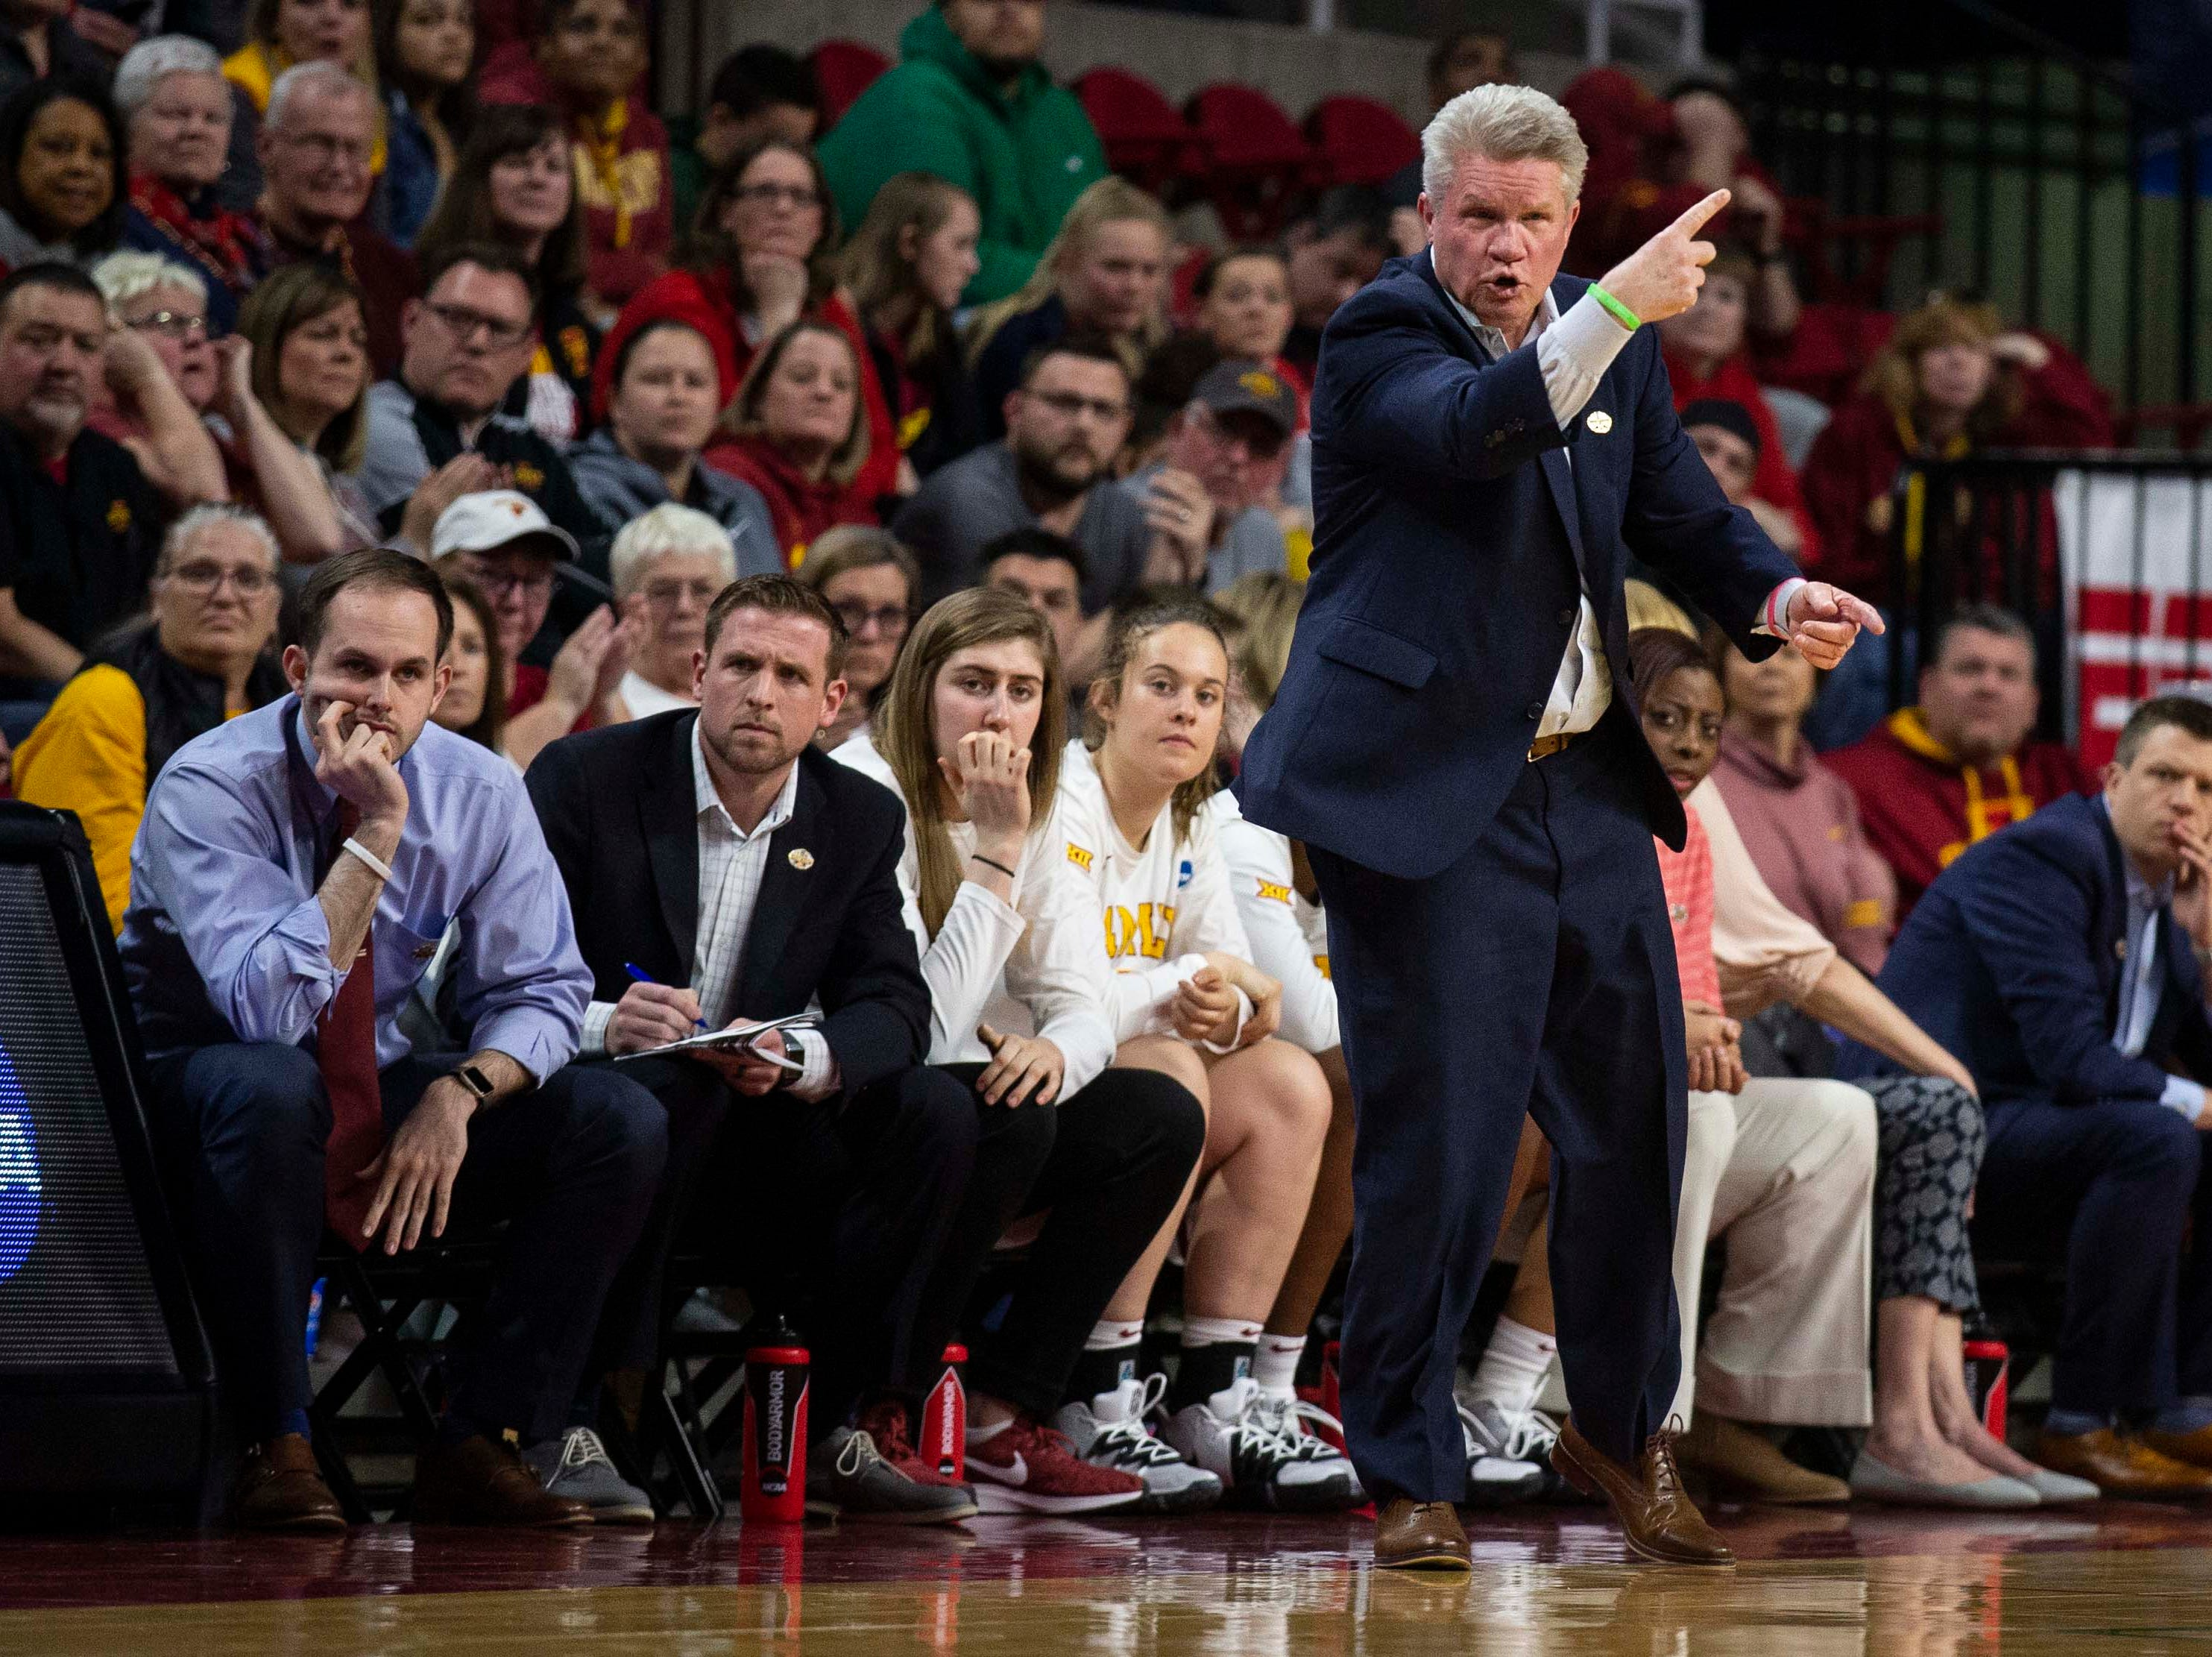 Iowa State Head Coach Bill Fennelly calls out a play during the NCAA Tournament second-round match-up between Iowa State and Missouri State on Monday, March 25, 2019, in Hilton Coliseum, in Ames, Iowa.